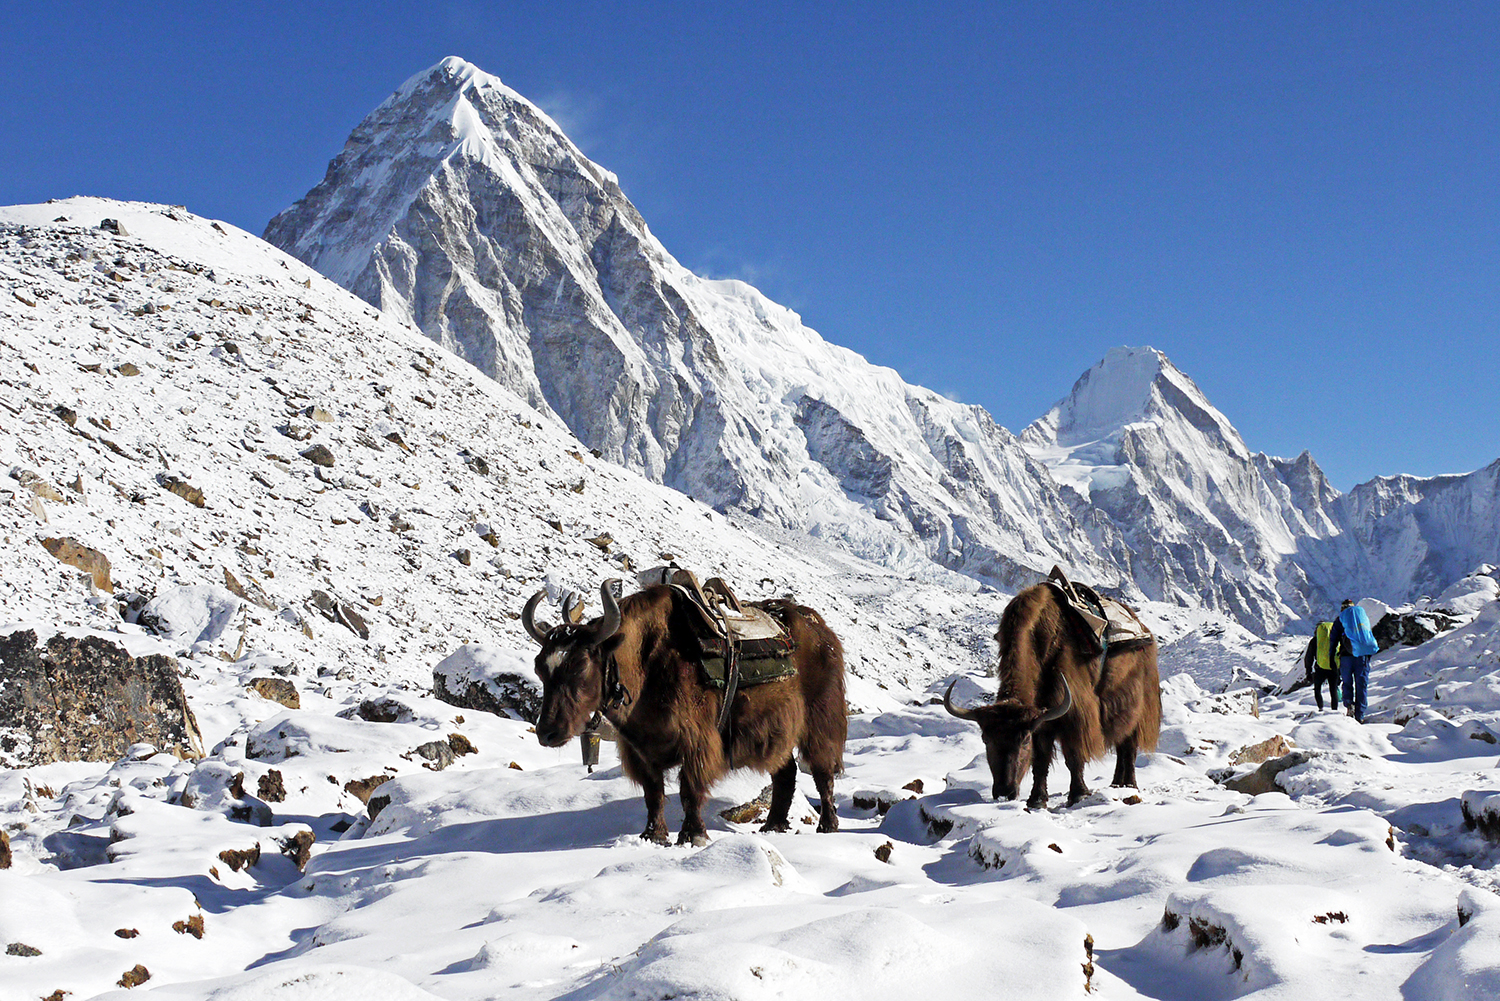 Yaks stopping to enjoy the views on the Everest Base Camp Trek